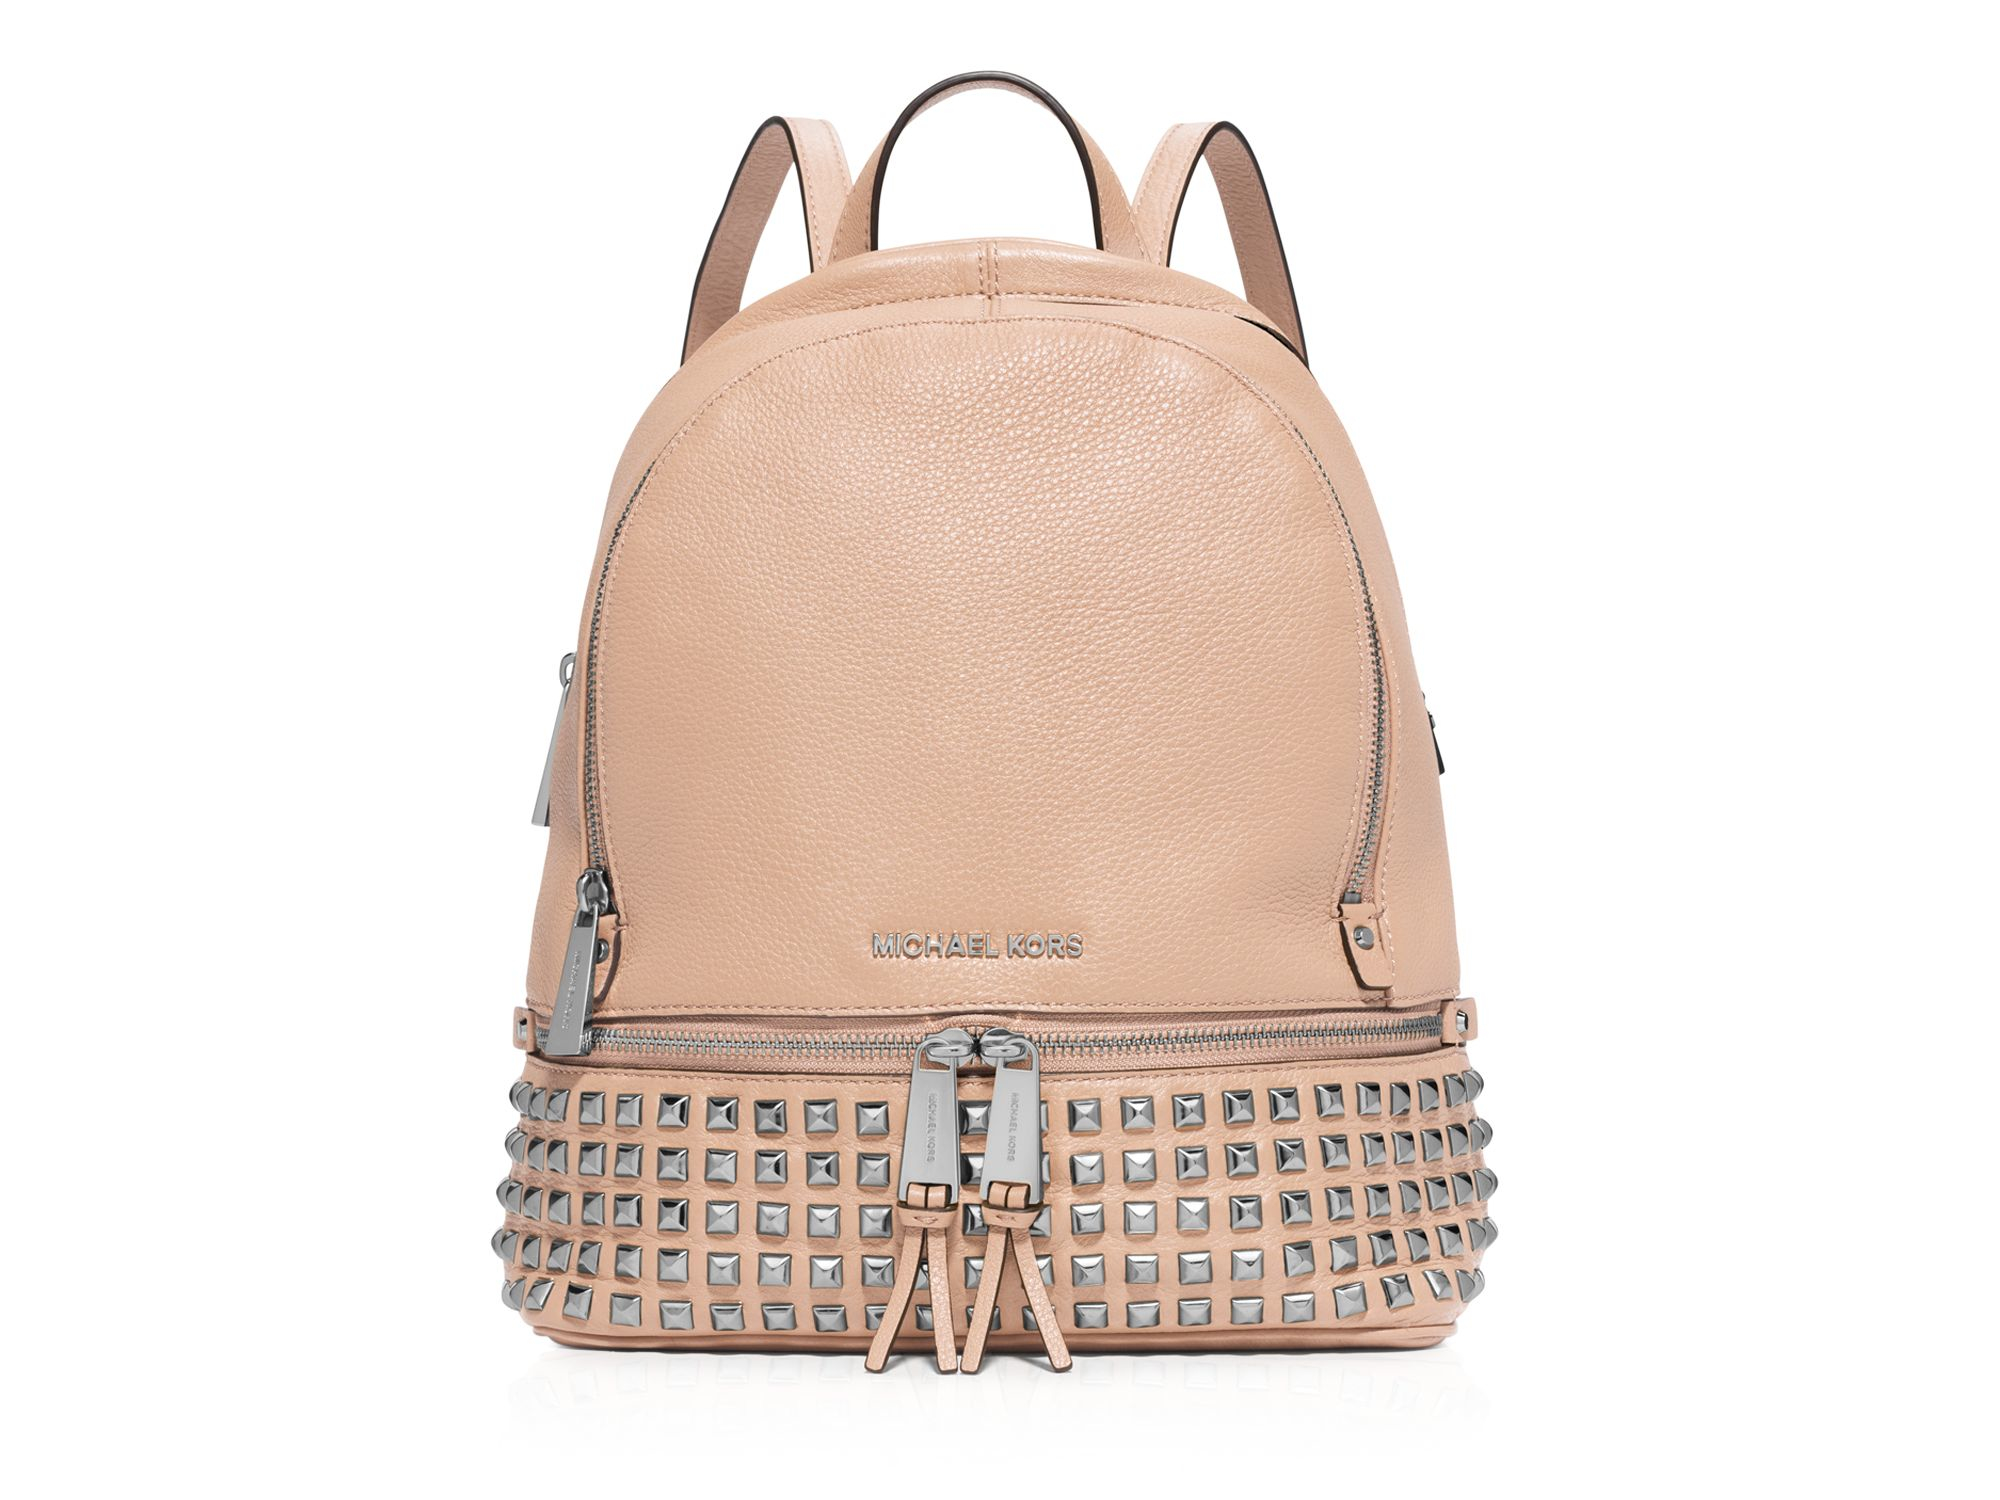 63b293486c4b Gallery. Previously sold at: Bloomingdale's · Women's Michael By Michael  Kors Rhea